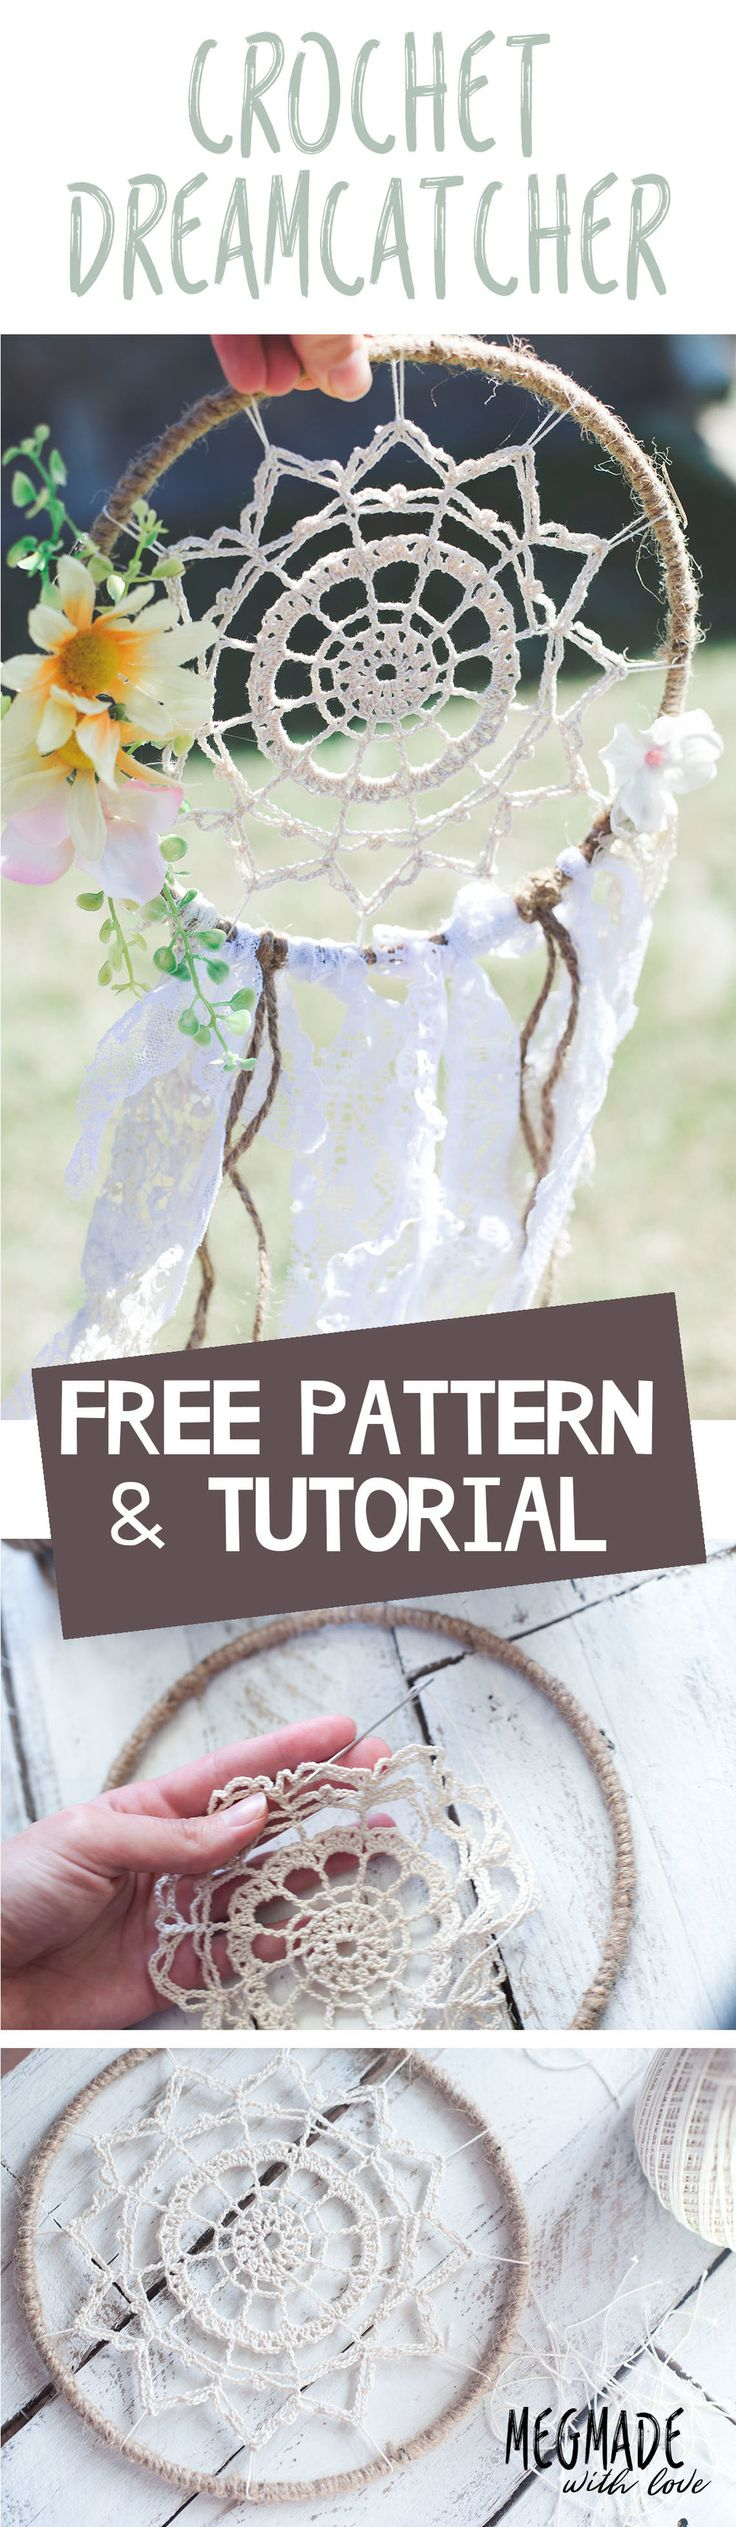 Crochet Dreamy Dreamcatcher Pattern — Megmade with Lo